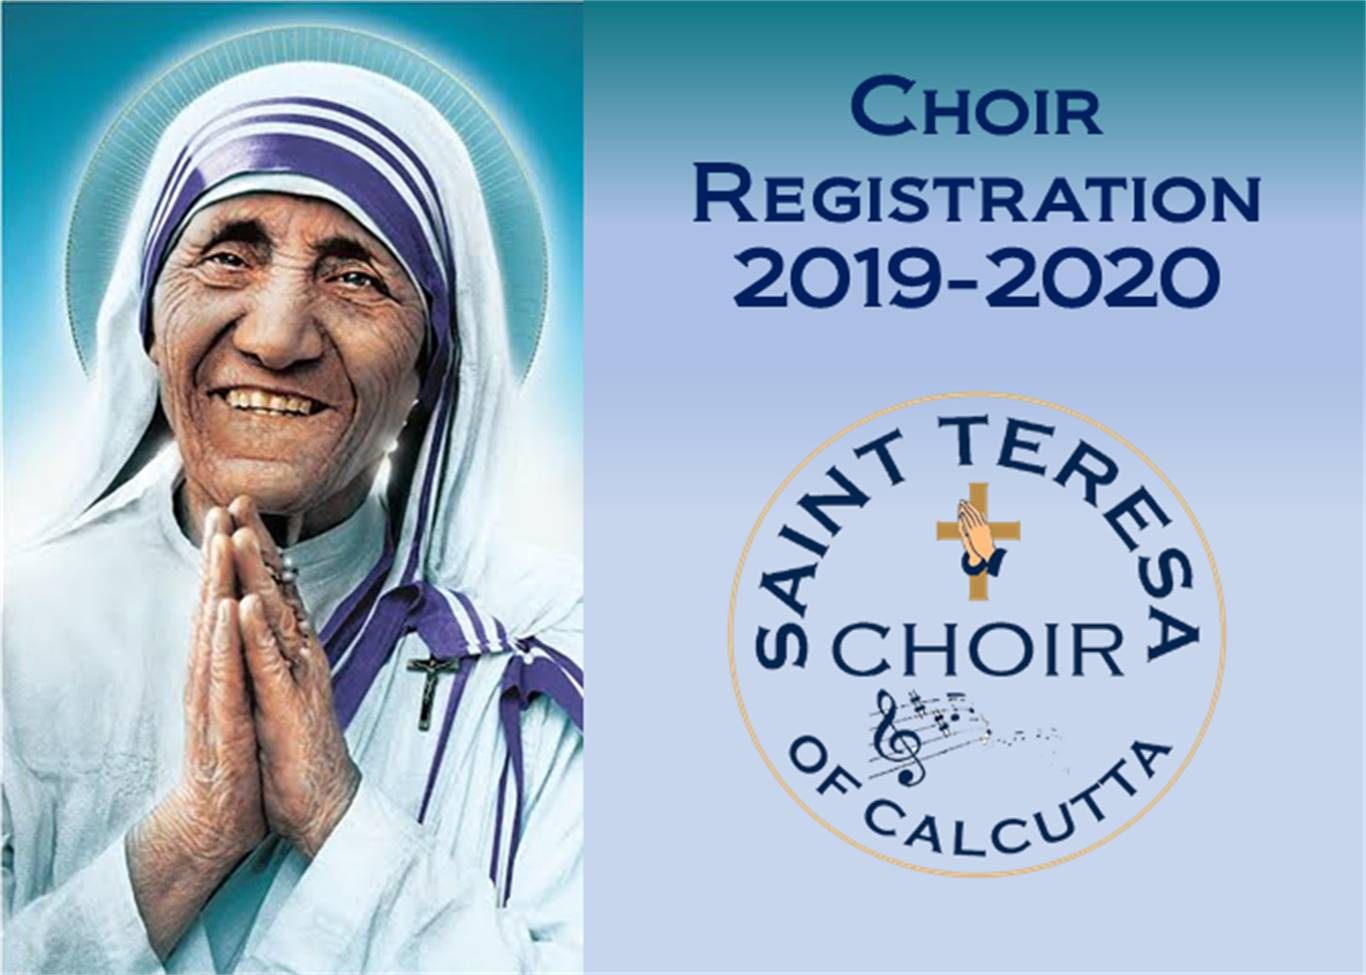 CHOIR REGISTRATION 2019-2020